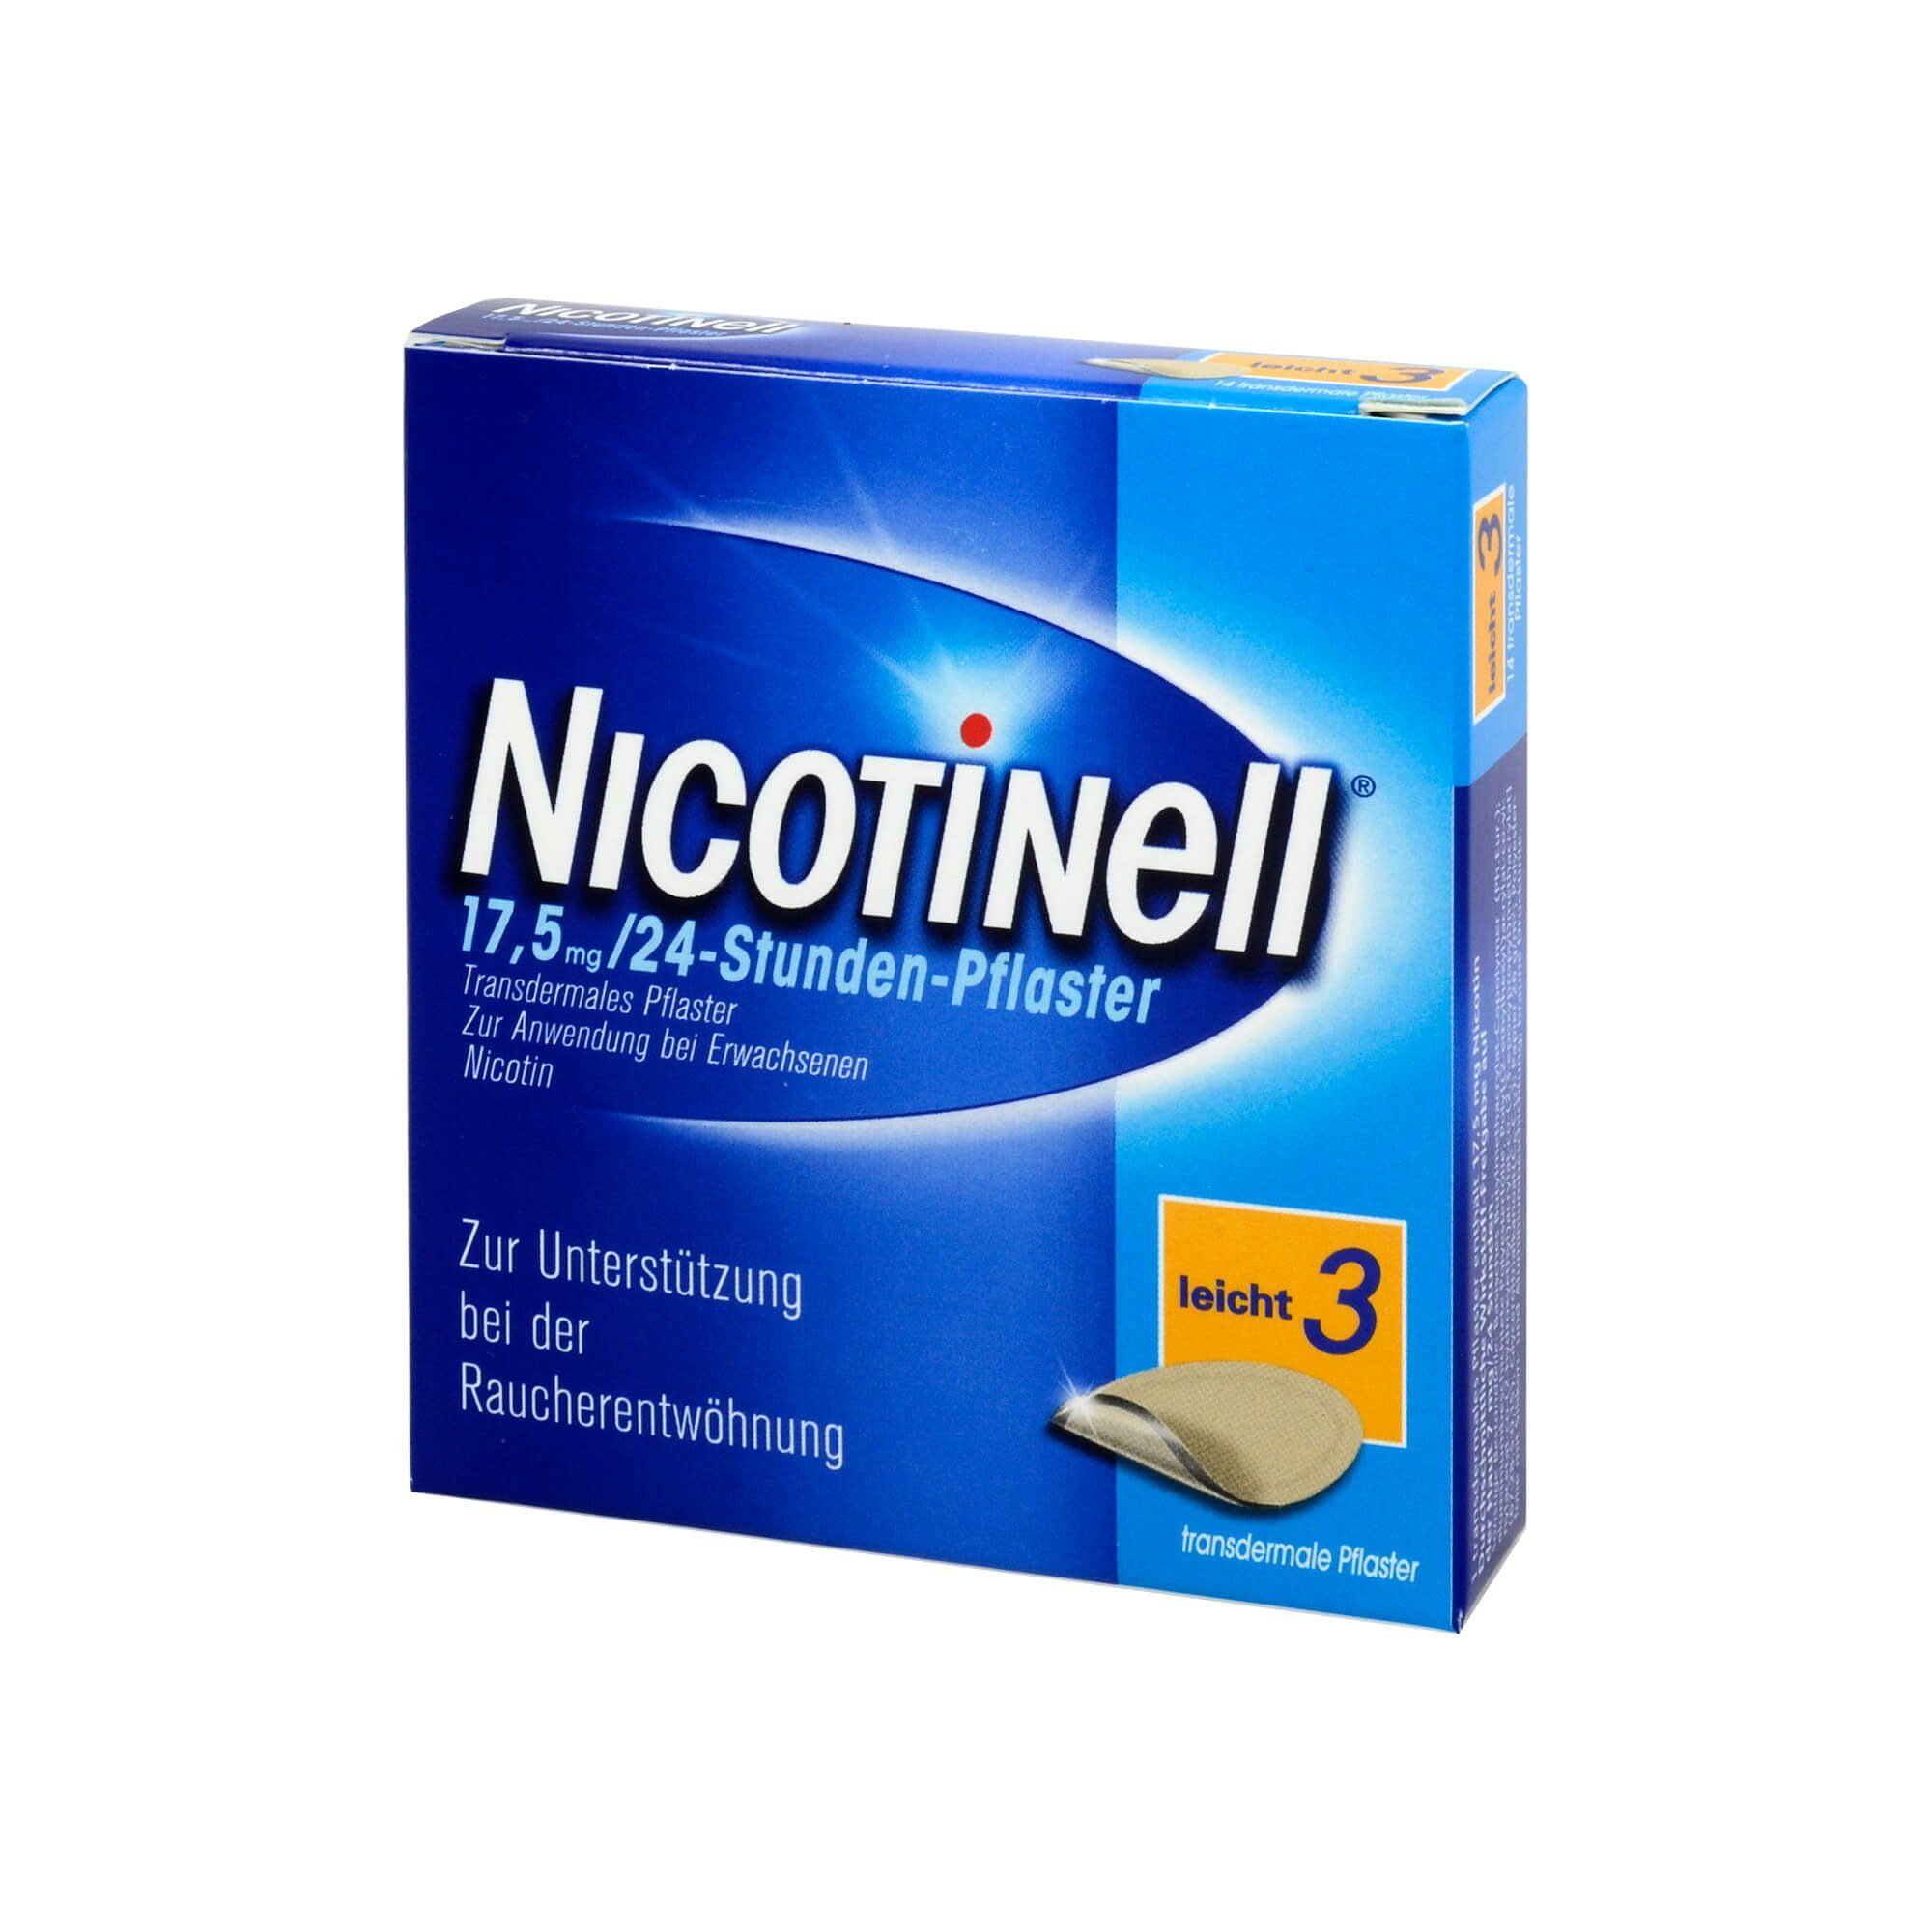 Nicotinell 17,5 mg 24 Stunden Pflaster, 7 St